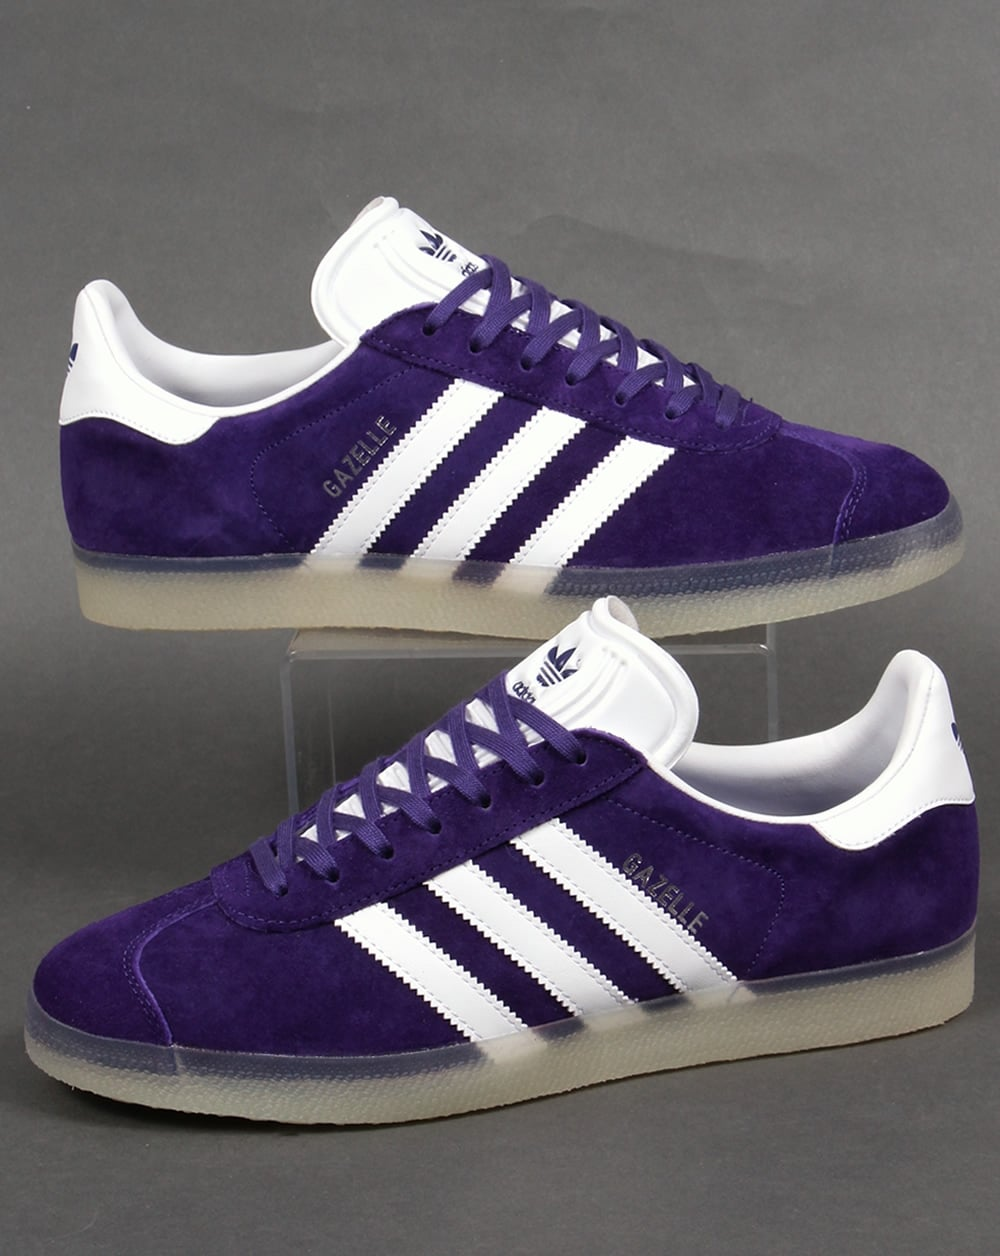 outlet store 1c65e a0a8b adidas Trainers Adidas Gazelle Trainers Purple White Ice Gum Sole